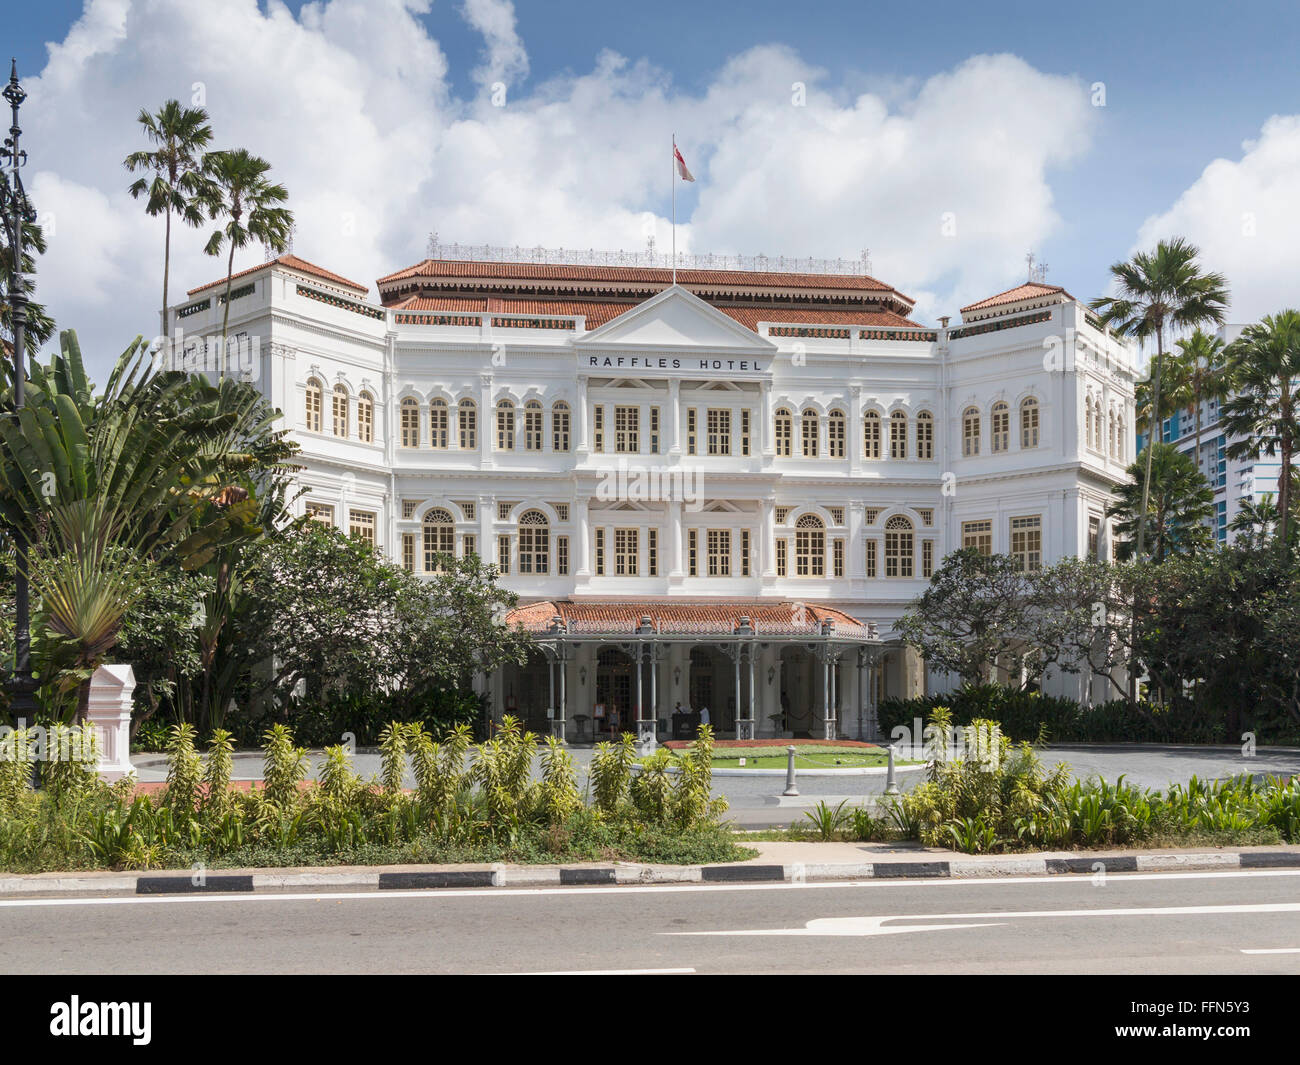 Raffles Hotel, Singapore, Southeast Asia in summer - Stock Image